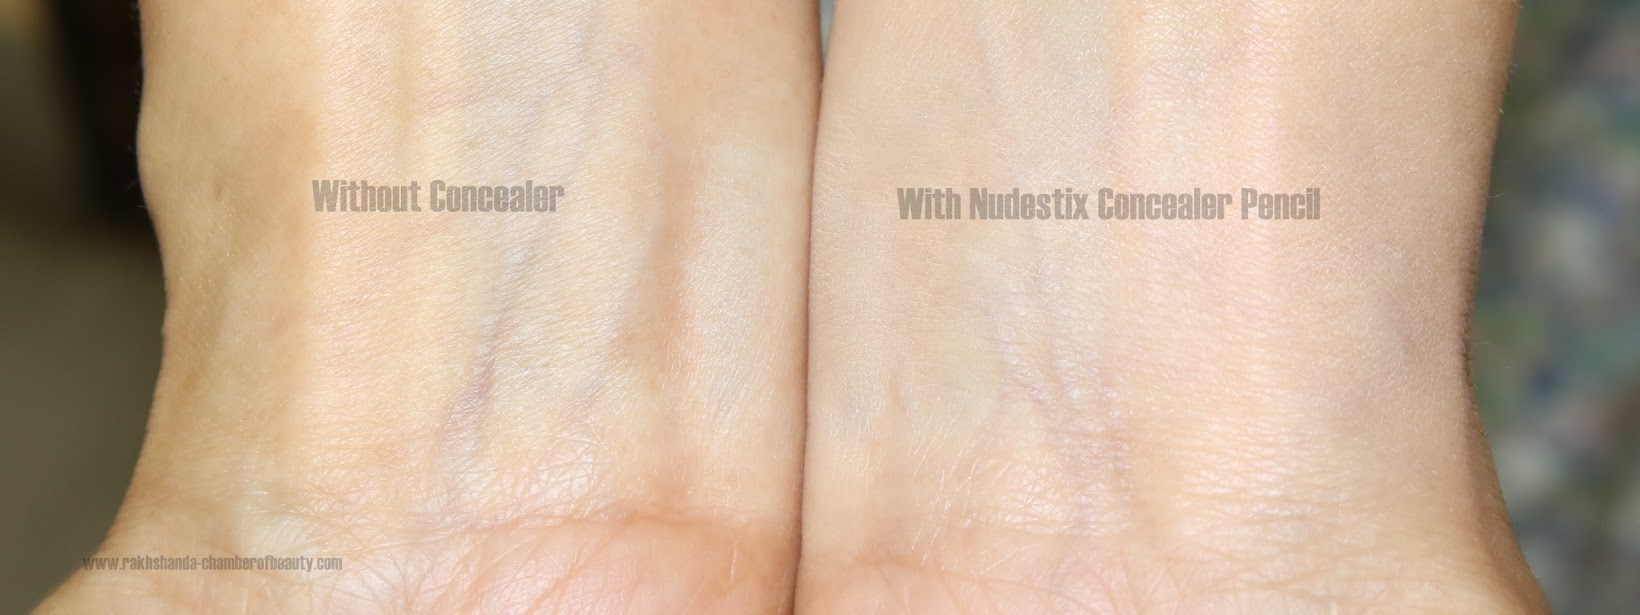 Nudestix Concealer Pencil 'Light 2' review, swatches, best concealers for fair skin, concealer, Indian beauty blogger, Nudestix, Nudestix Concealer Pencil review, review, review and swatches,